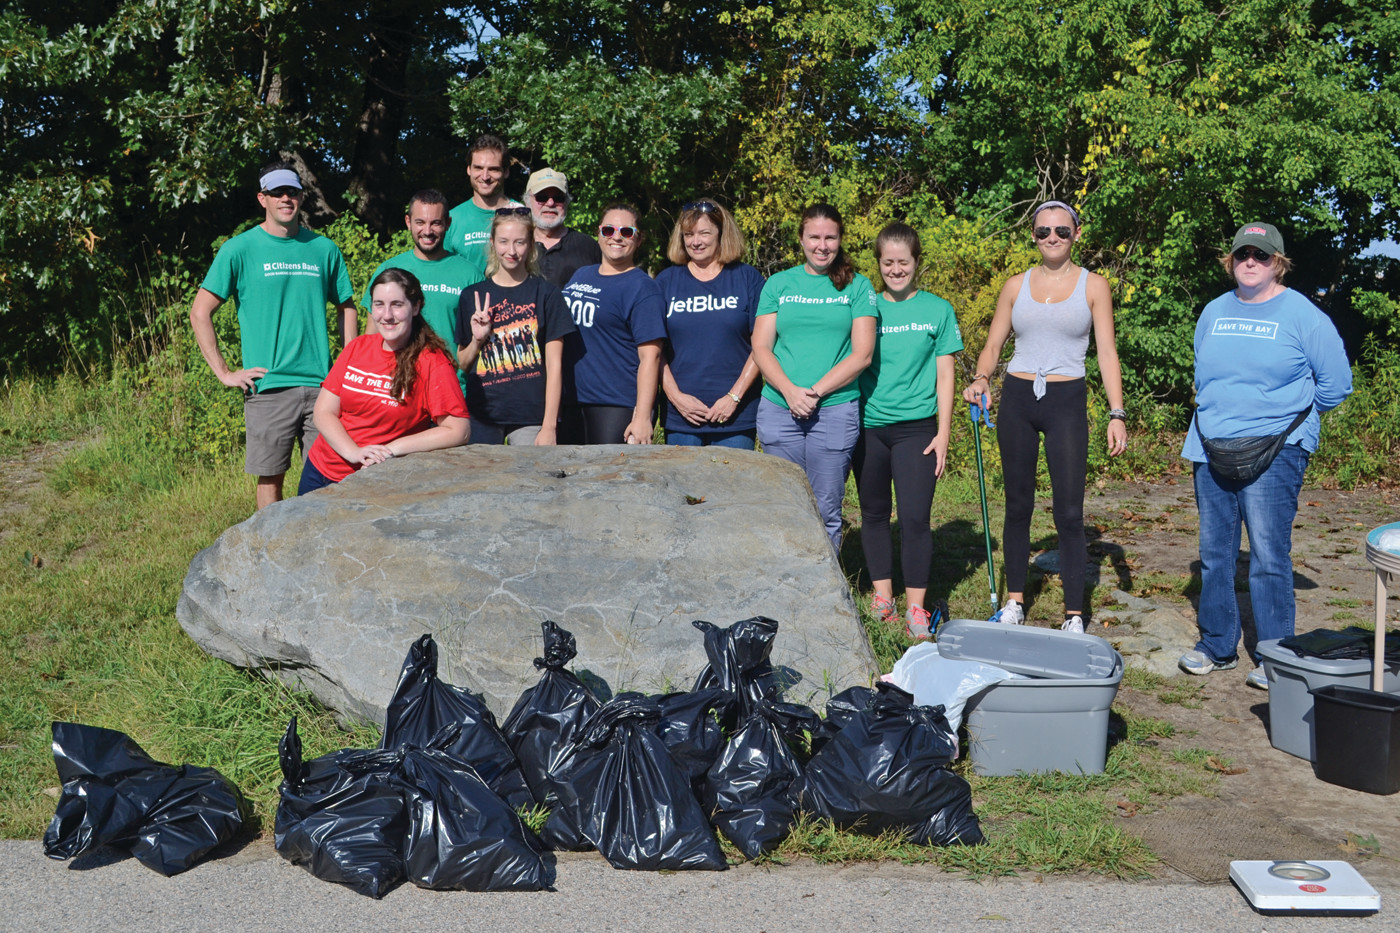 TEAMWORK: In just two hours, 12 volunteers helped remove 86 pounds of trash from Salter Grove. Volunteers came from Save the Bay, Citizens Bank, Jet Blue and elsewhere in the city.